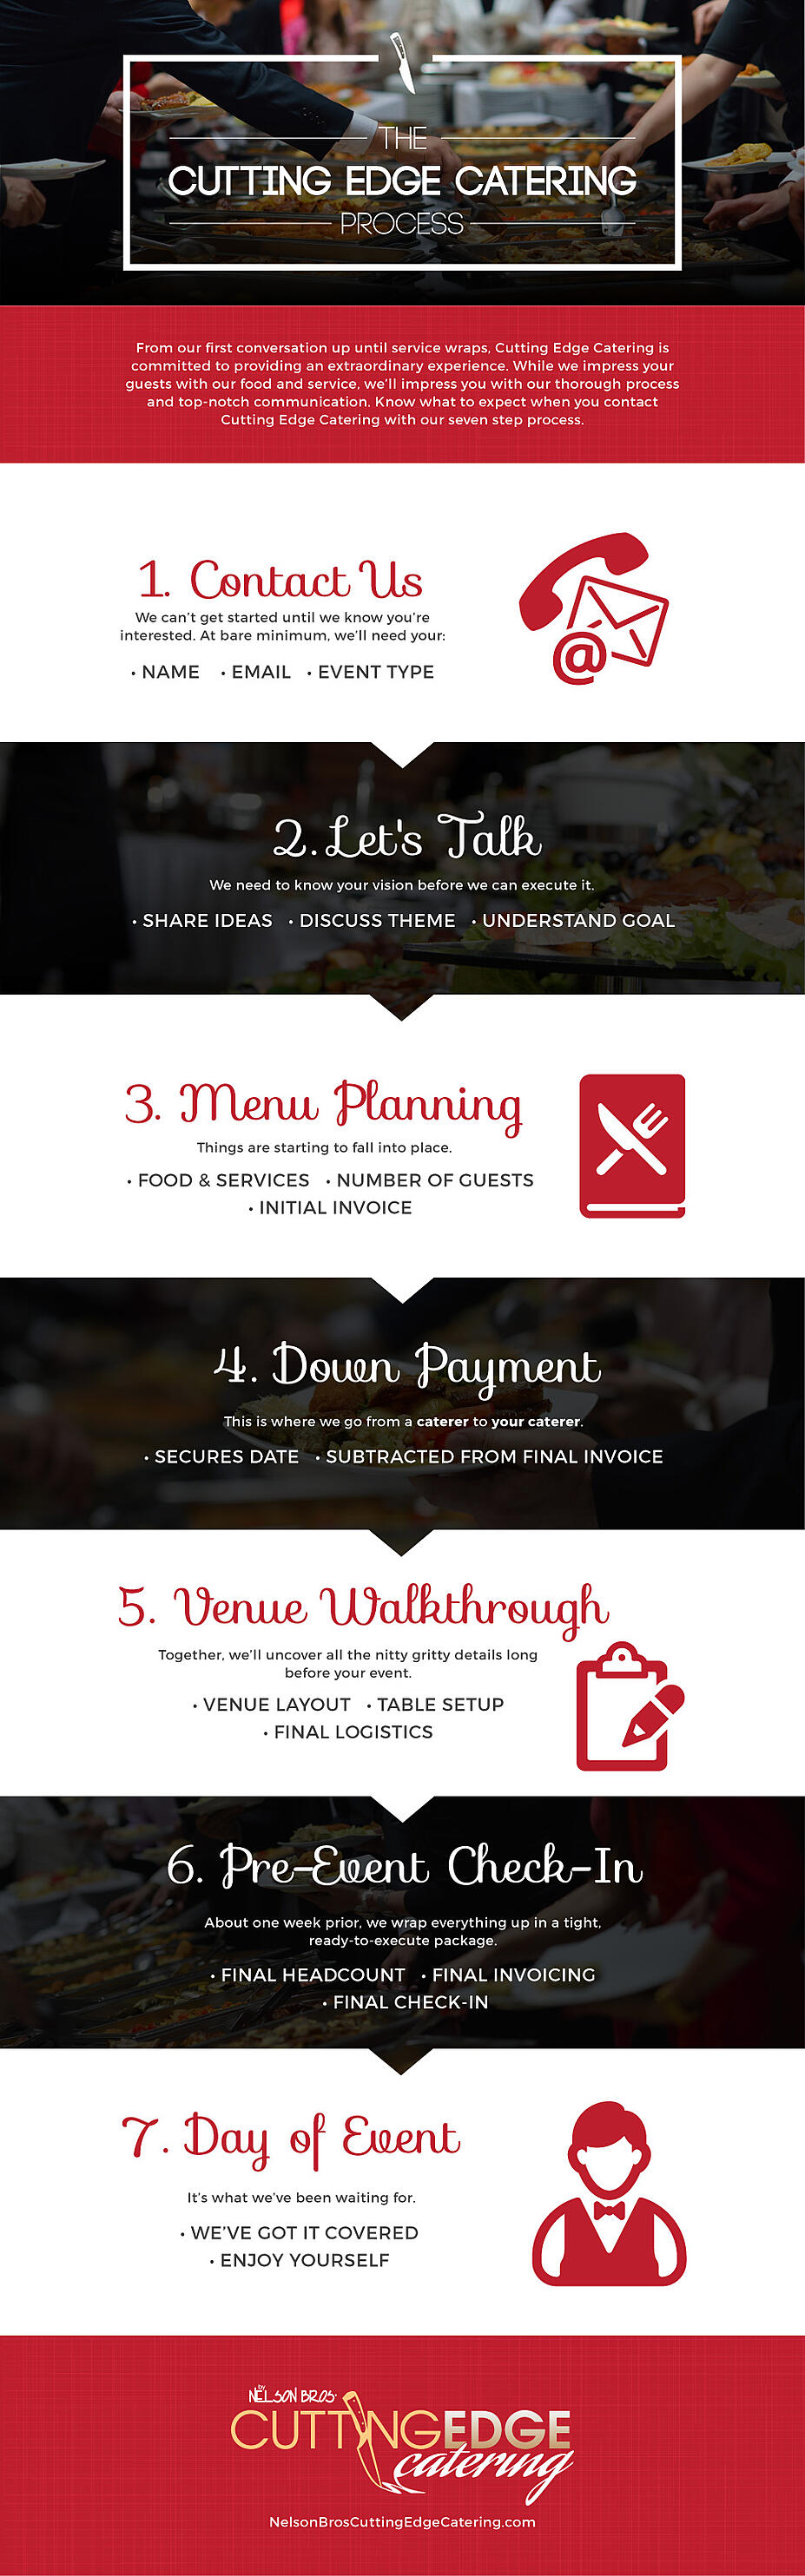 Cutting Edge Catering Process Infographic